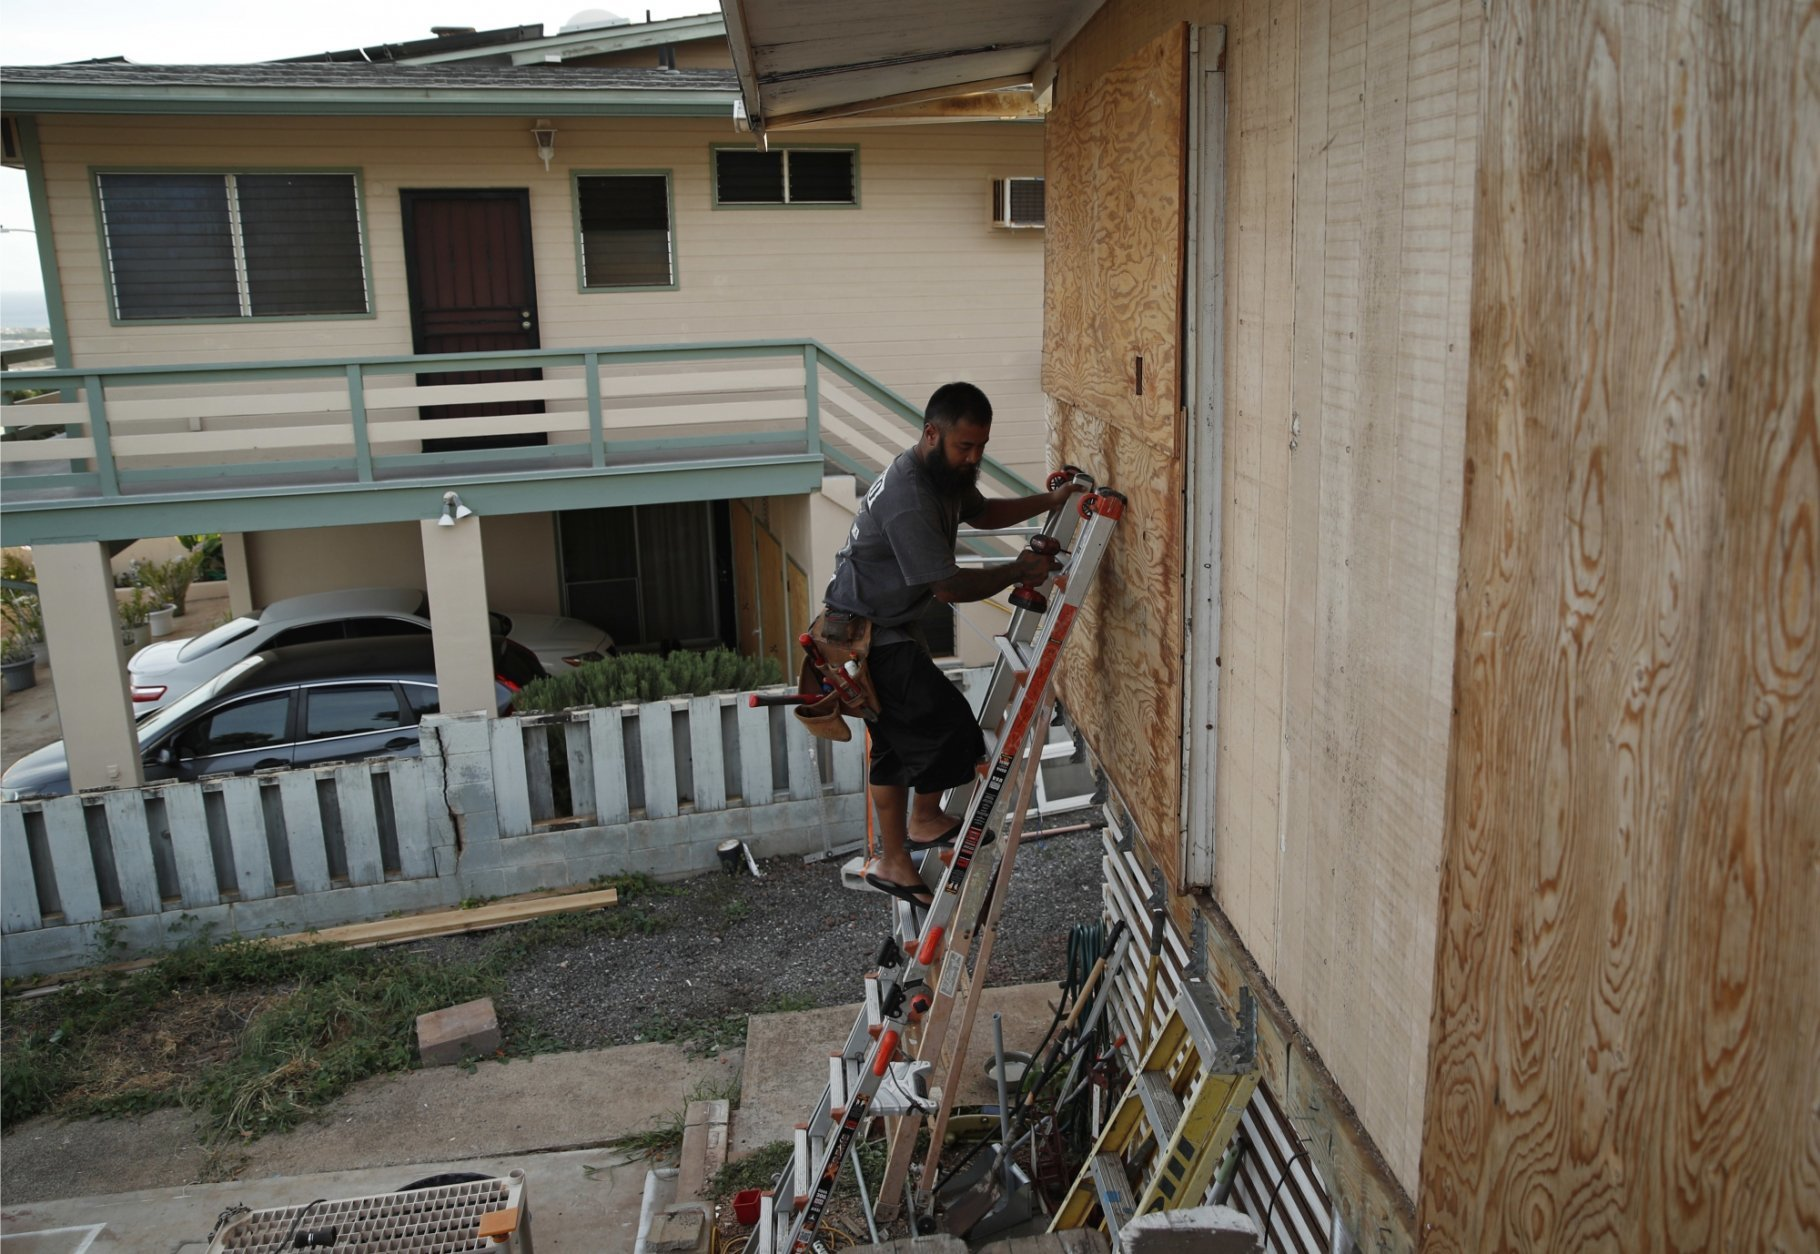 Kaipo Popa secures plywood to protect windows on a home in preparation for Hurricane Lane, Wednesday, Aug. 22, 2018, in Kapolei, Hawaii. As emergency shelters opened, rain began to pour and cellphone alerts went out, the approaching hurricane started to feel real for Hawaii residents.(AP Photo/John Locher)